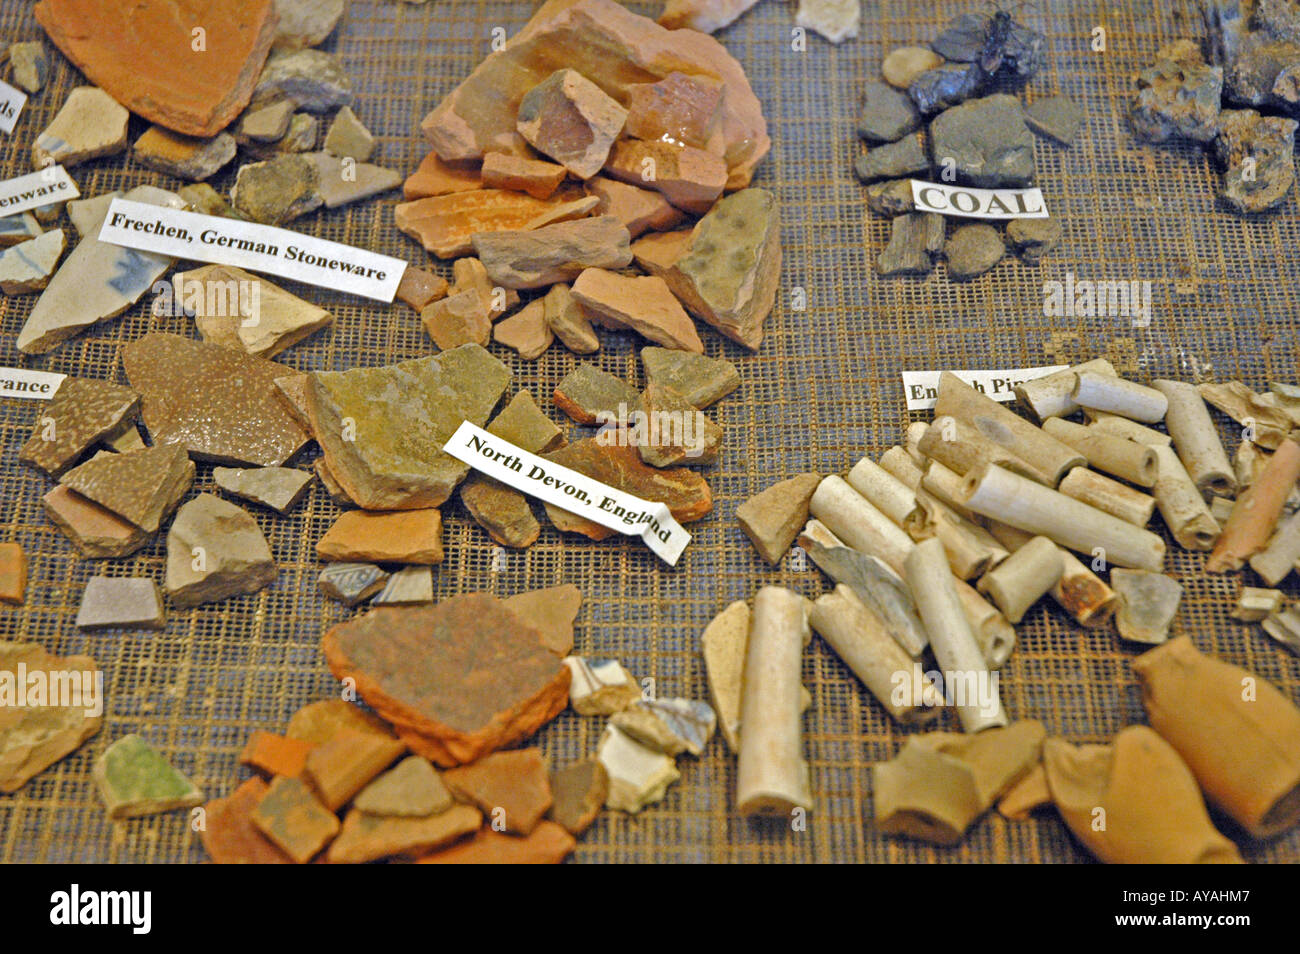 Historic Jamestowne Original Jamestown Settlement archaeological excavation English French and German  pipes pottery - Stock Image